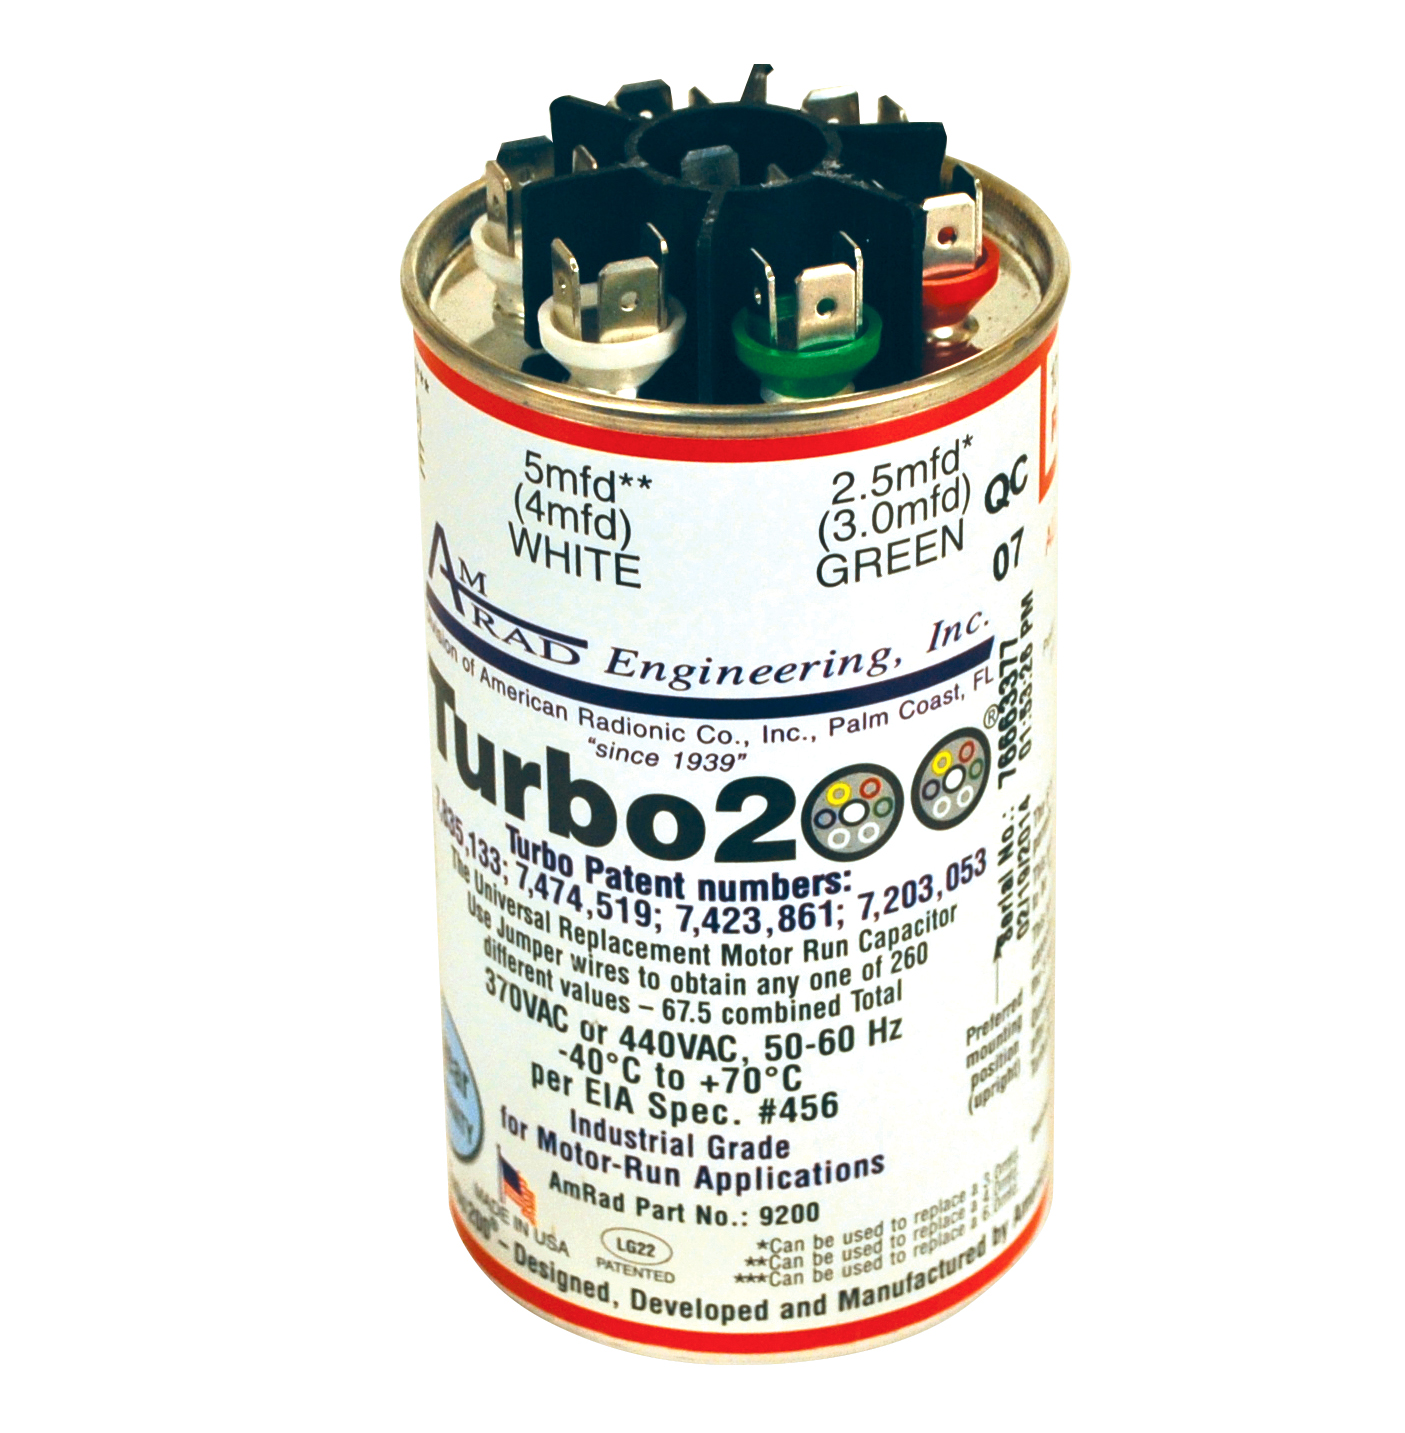 TURBO 200 MULTI-TAP CAPACITOR 2.5-67.5 MFD 370 OR 440V MARS